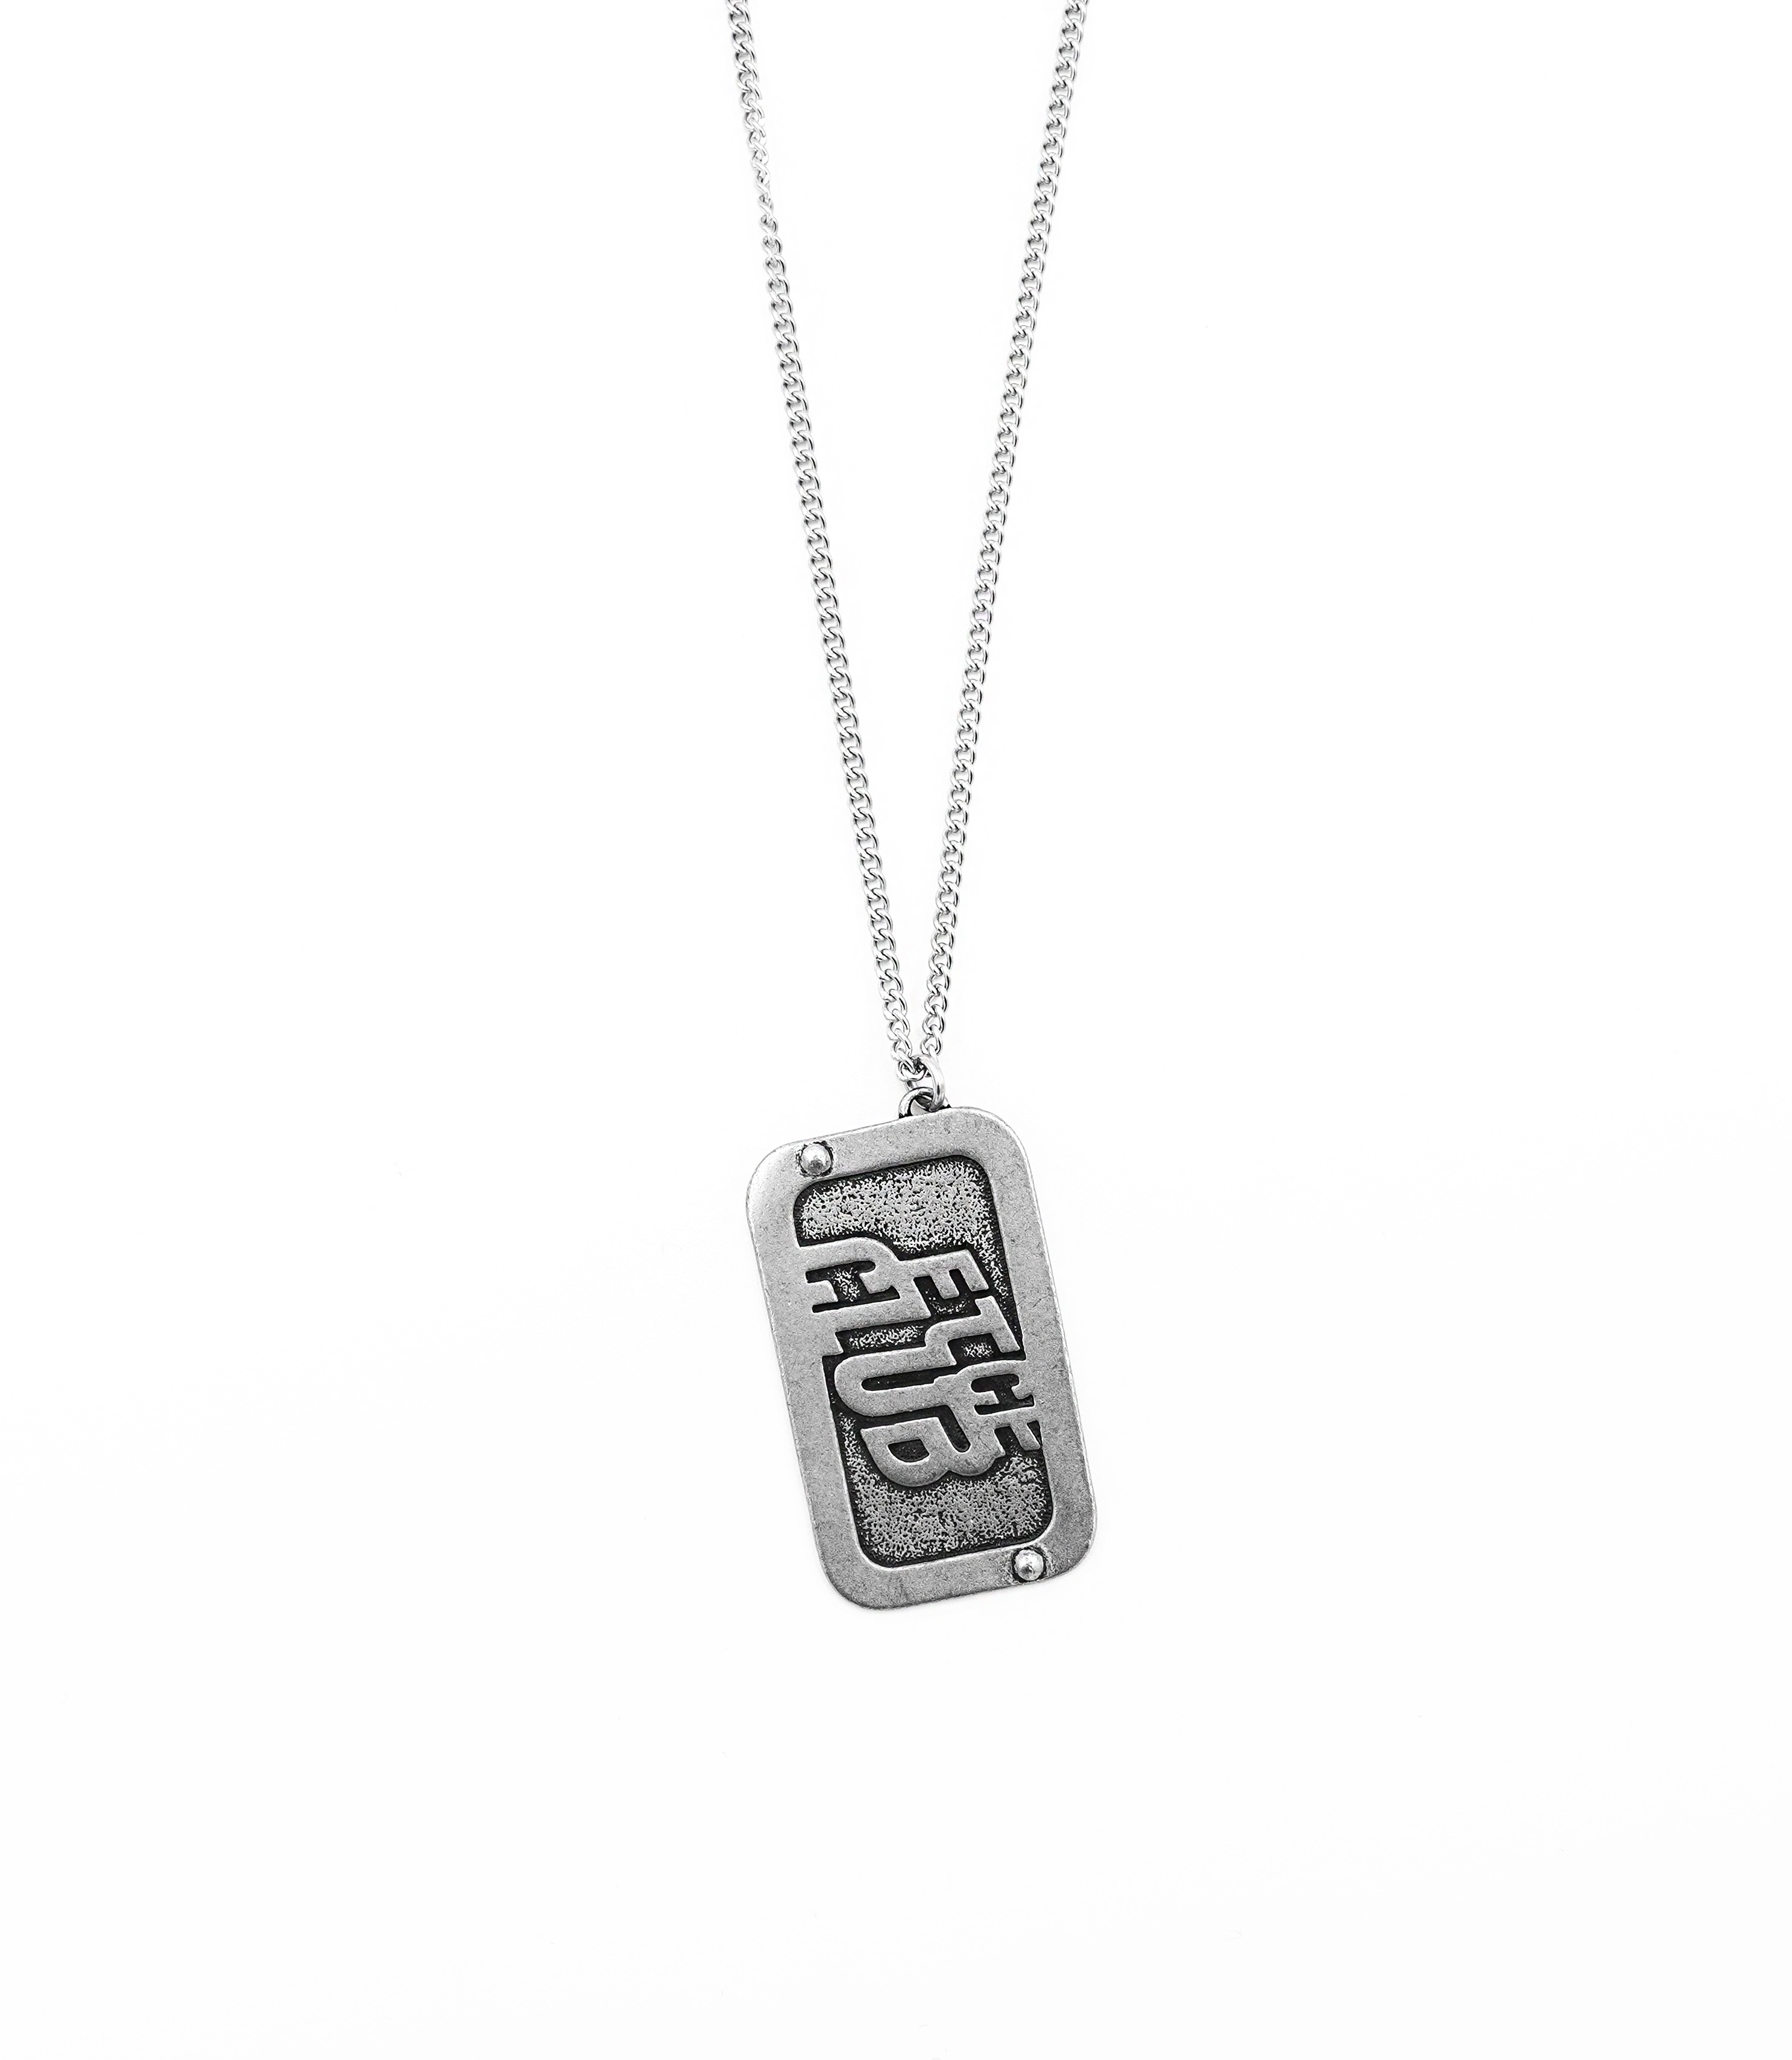 ETCE CLUB Necklace